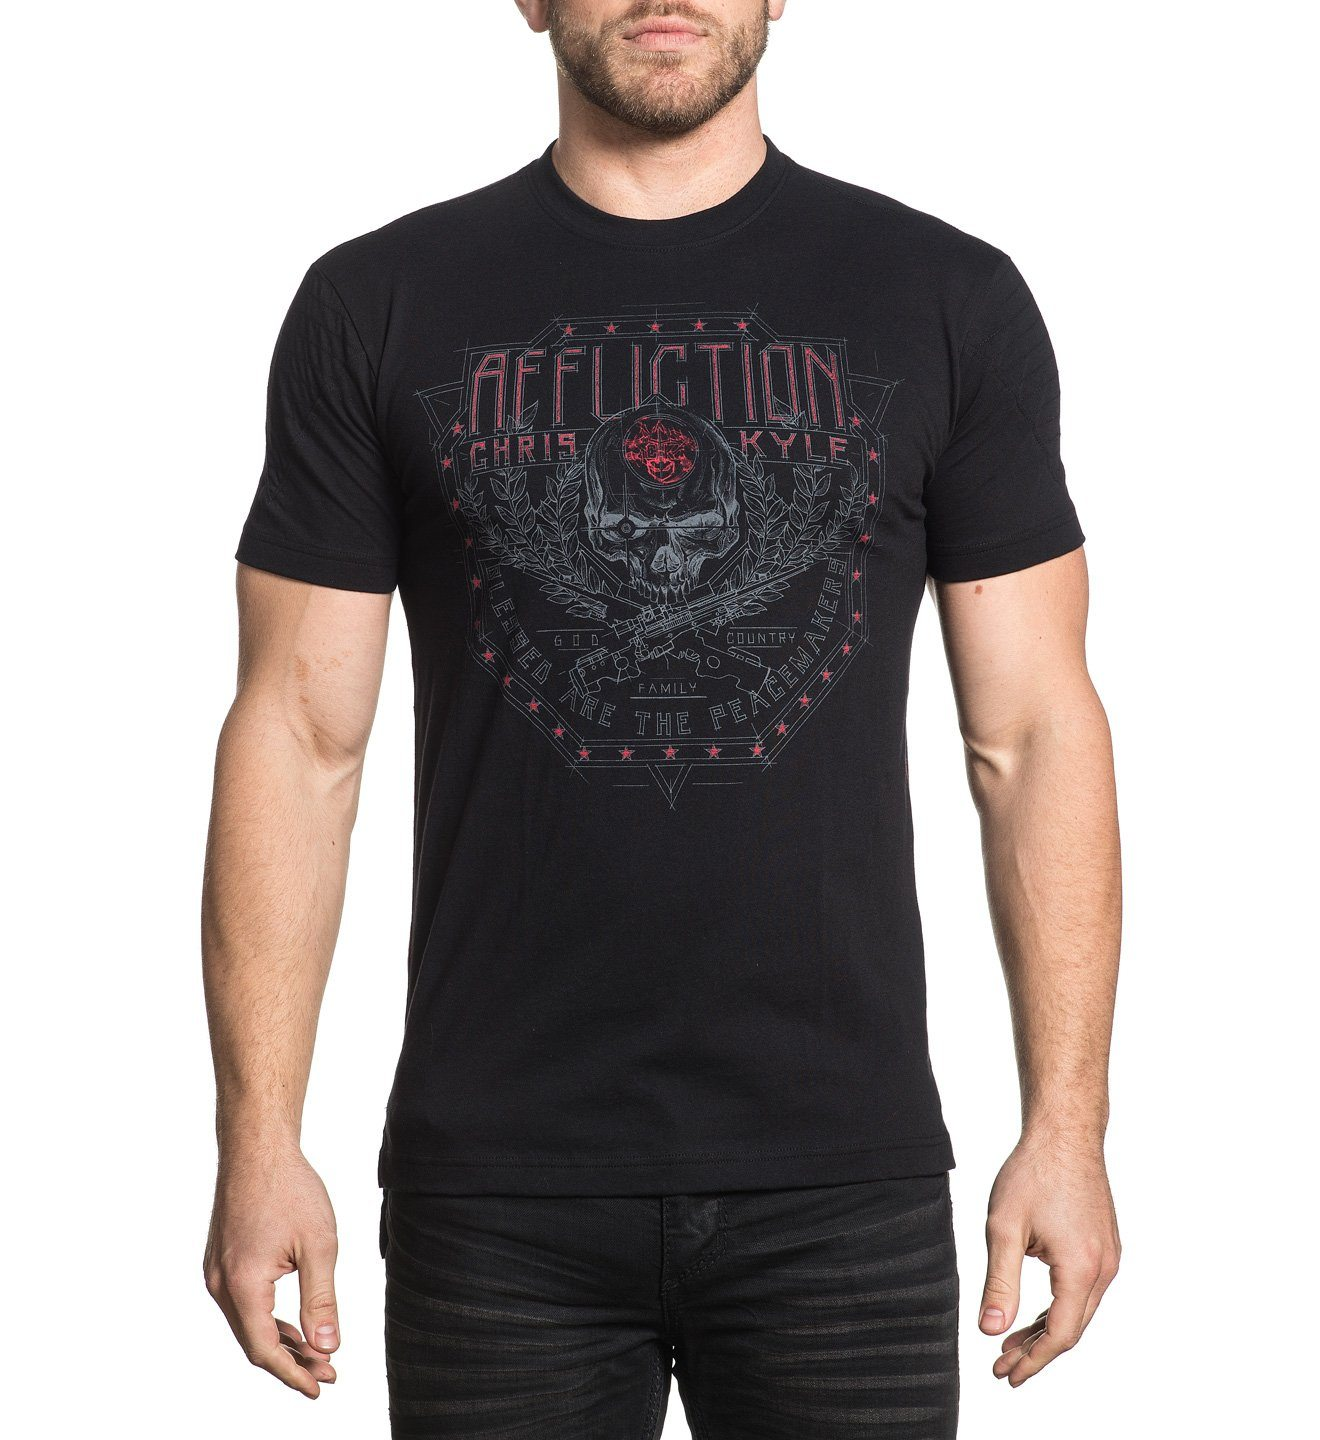 Ck Ballistic - Mens Short Sleeve Tees - Affliction Clothing